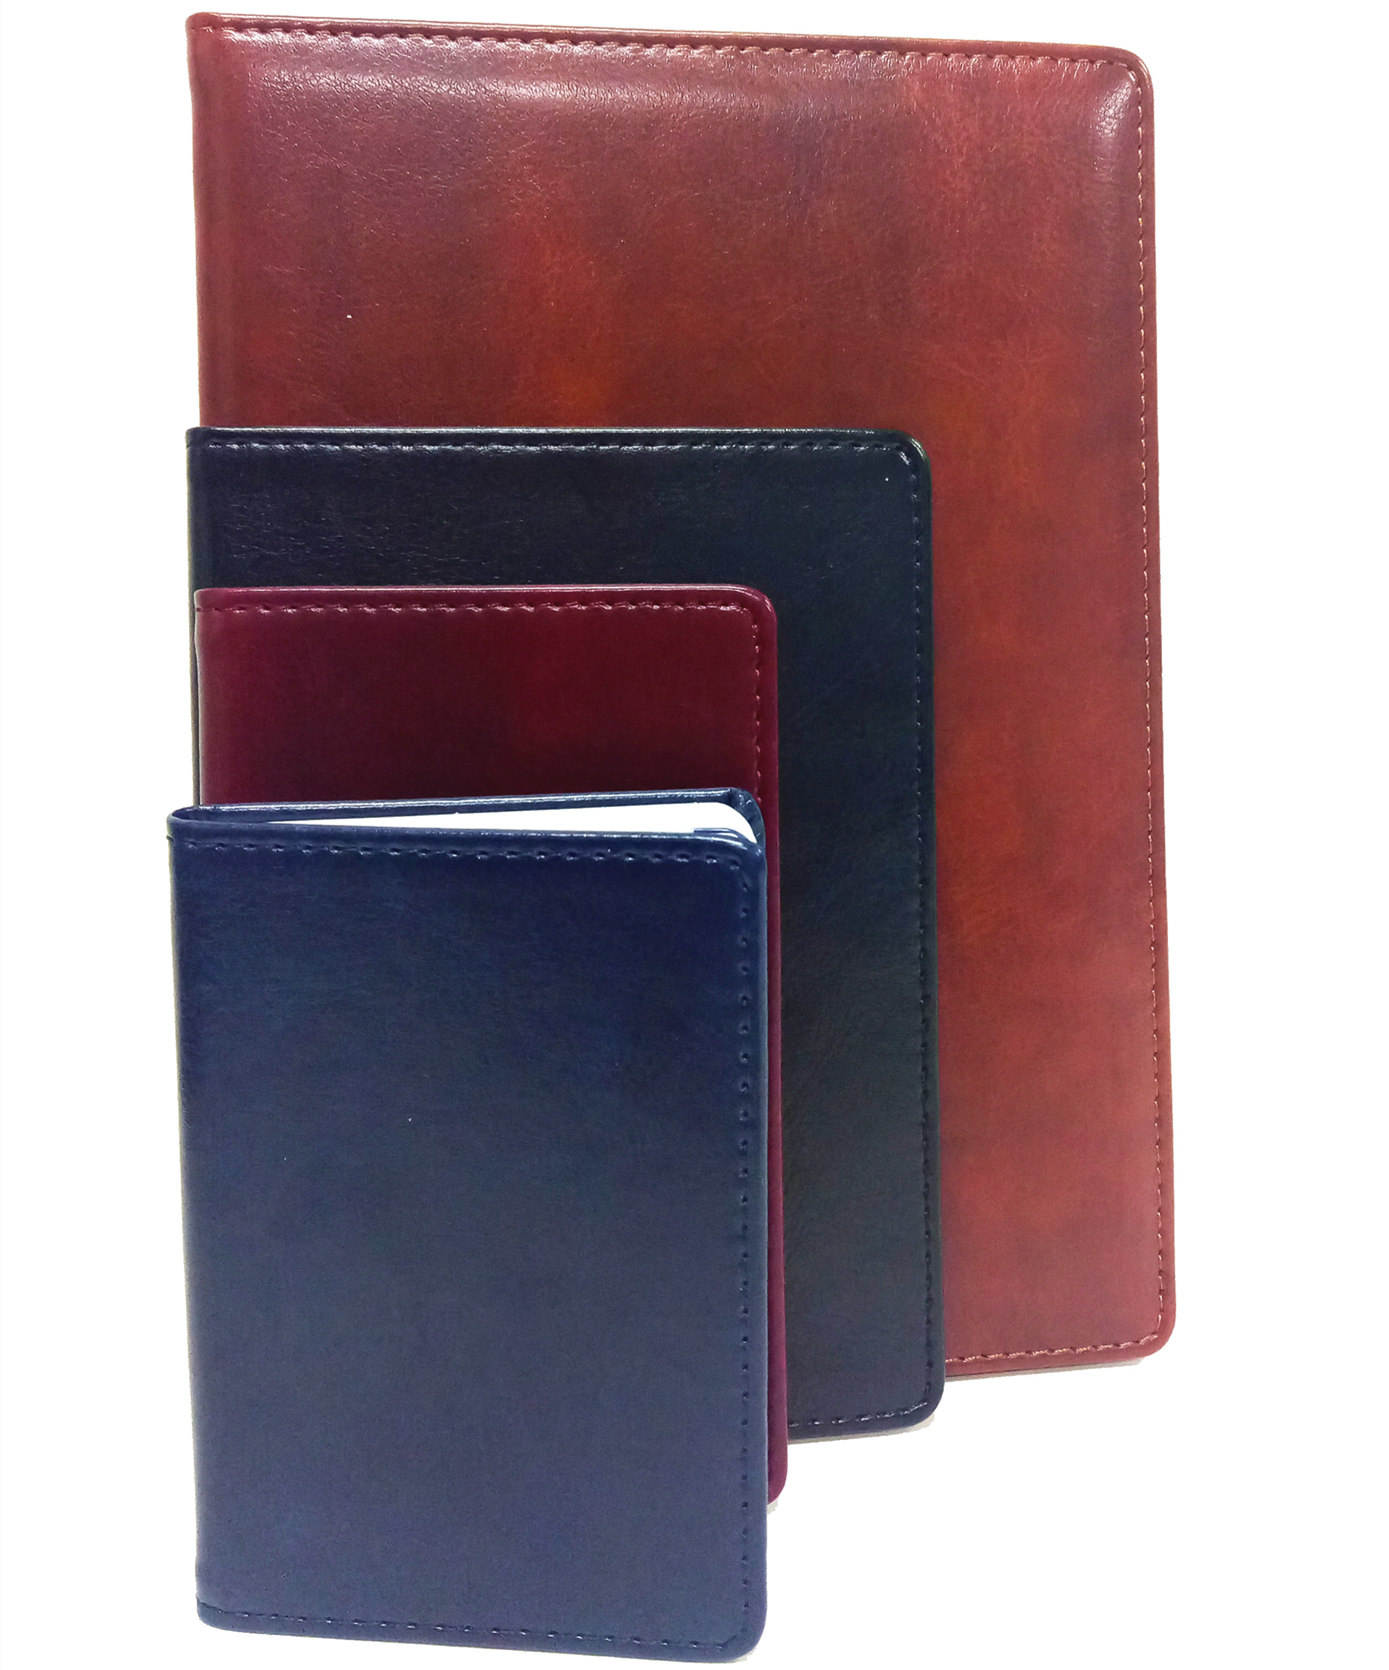 2020 PU Leather Notebook Customized Size Address Book With Blind Logo